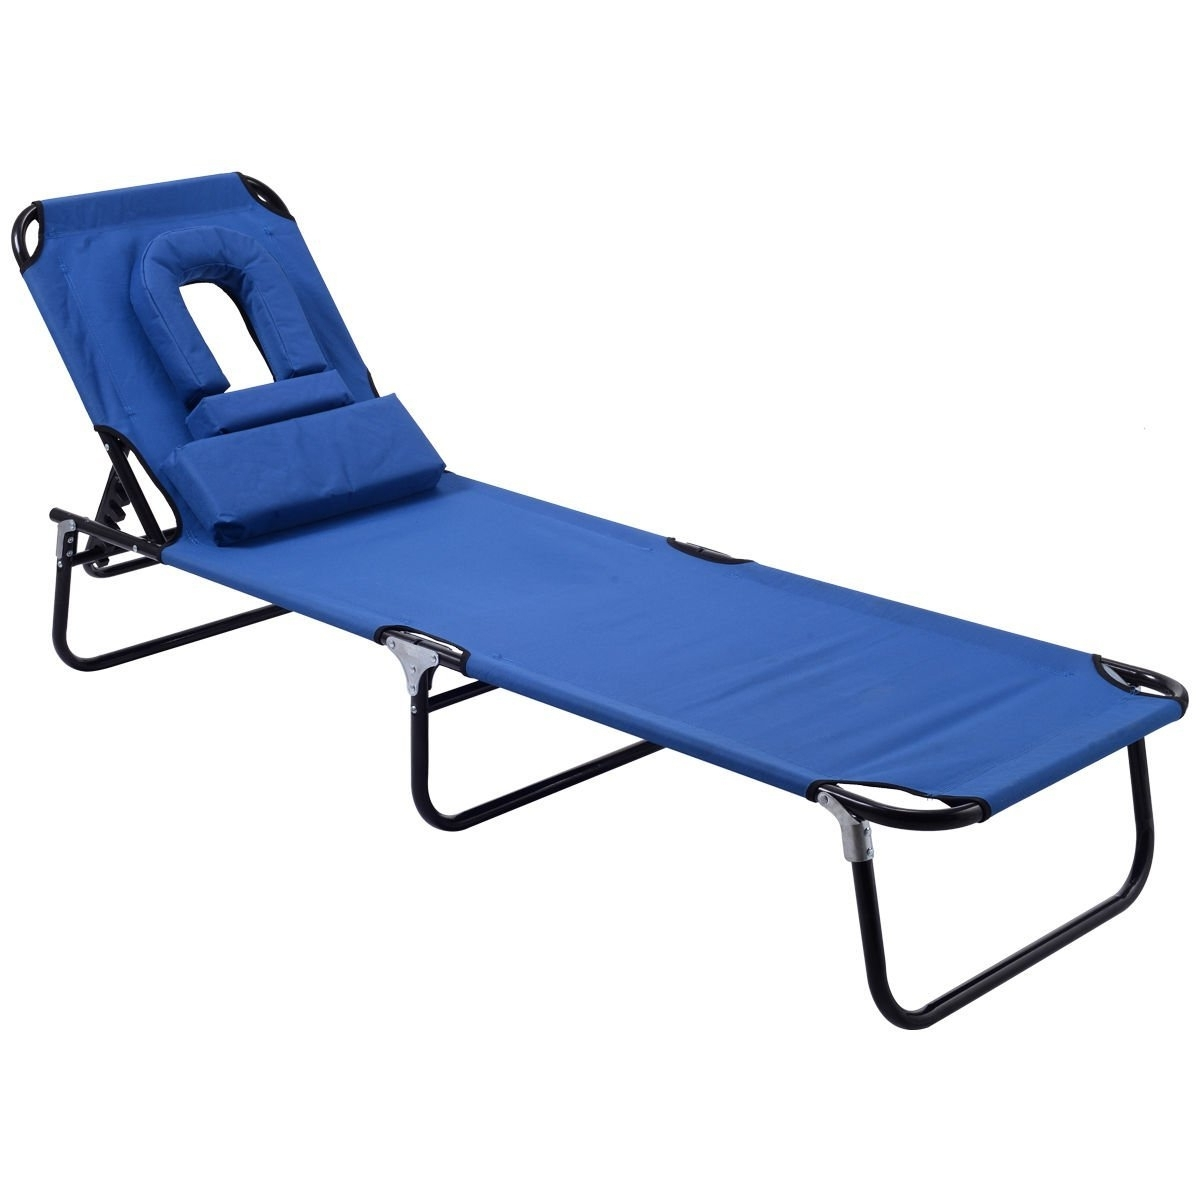 Amazon: Chaise Lounges: Patio, Lawn & Garden Intended For Popular Patio Chaise Lounge Clearance (View 1 of 15)